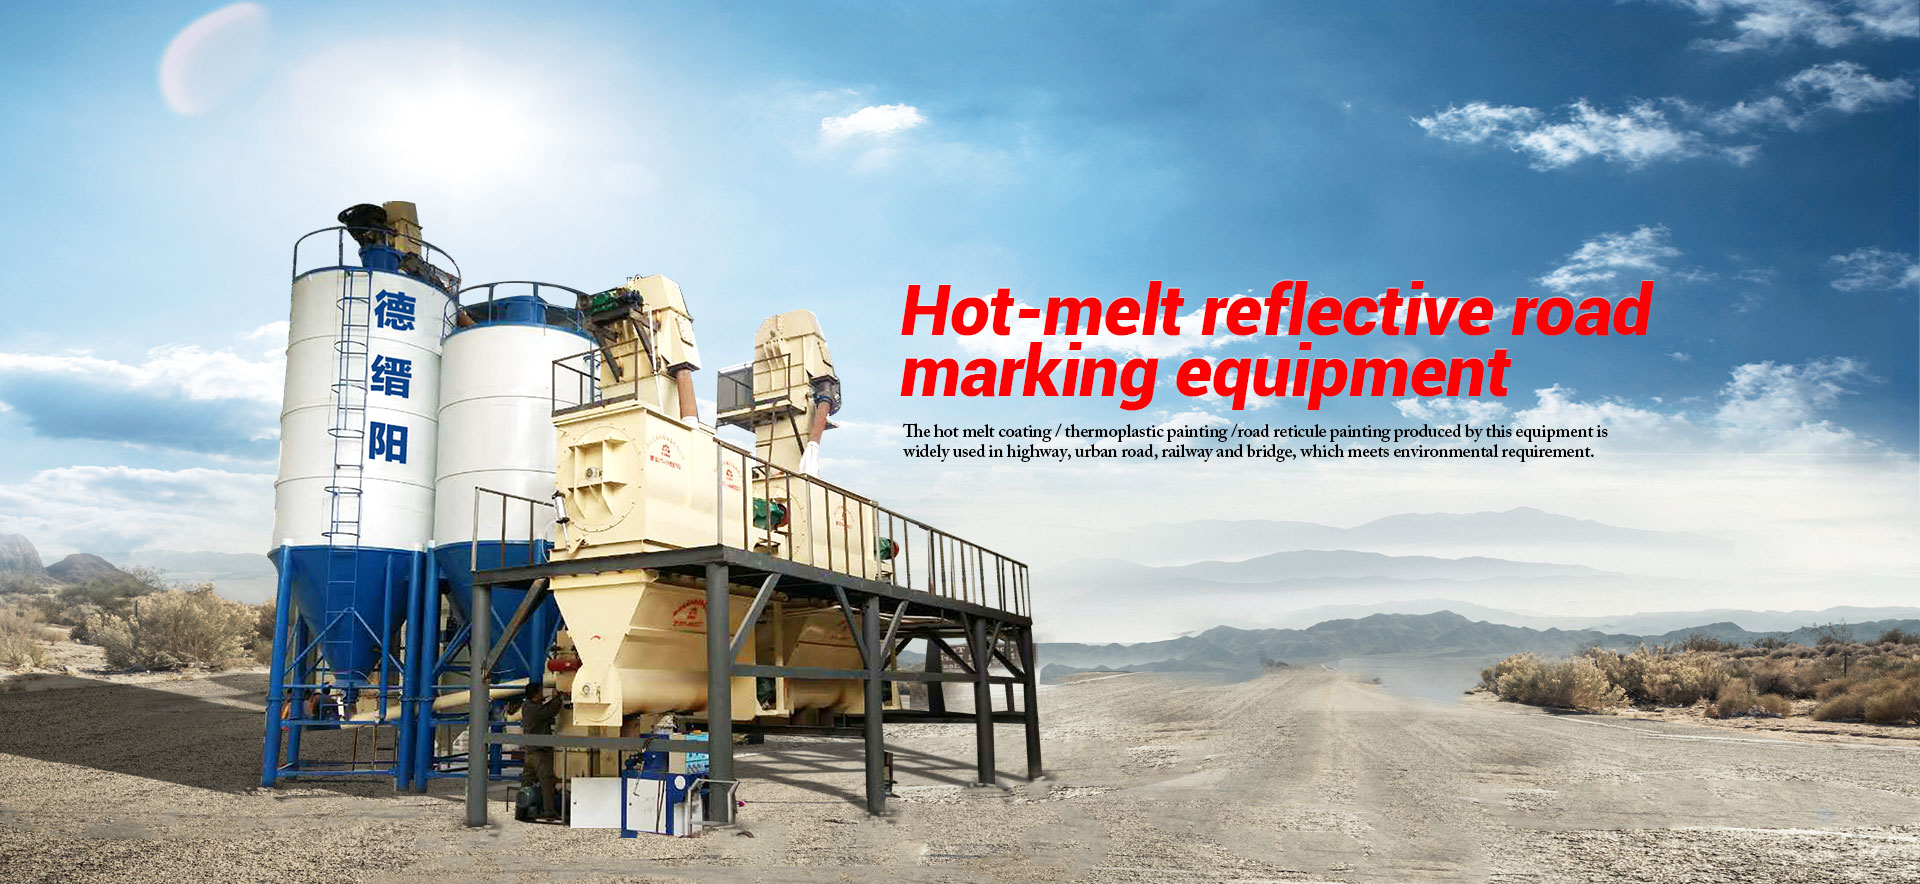 Hot-melt reflective road marking equipment